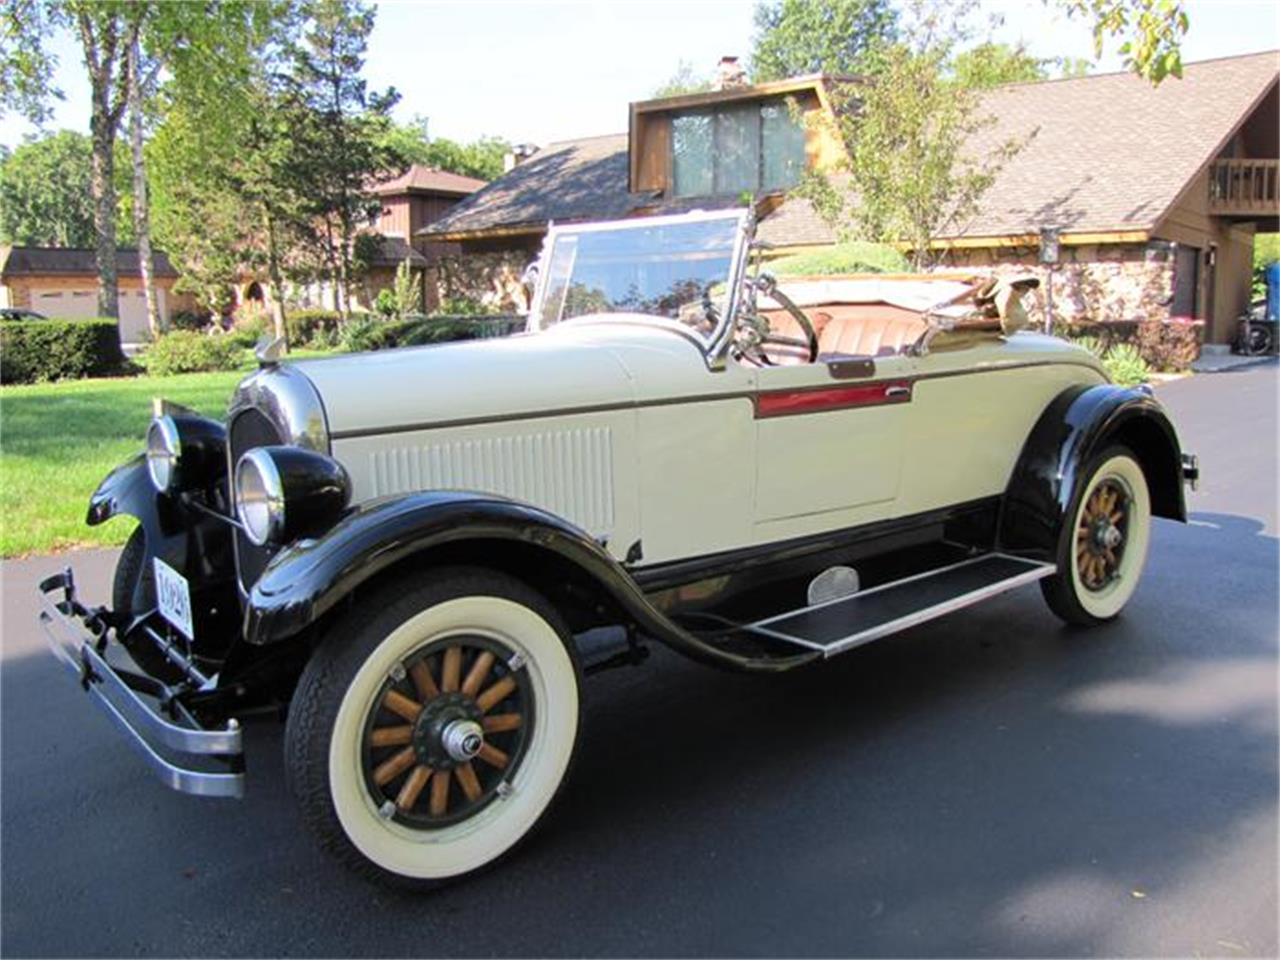 1926 Chrysler G 70 Roadster for Sale   ClassicCars com   CC 360713 Large Picture of  26 G 70 Roadster   7QBT